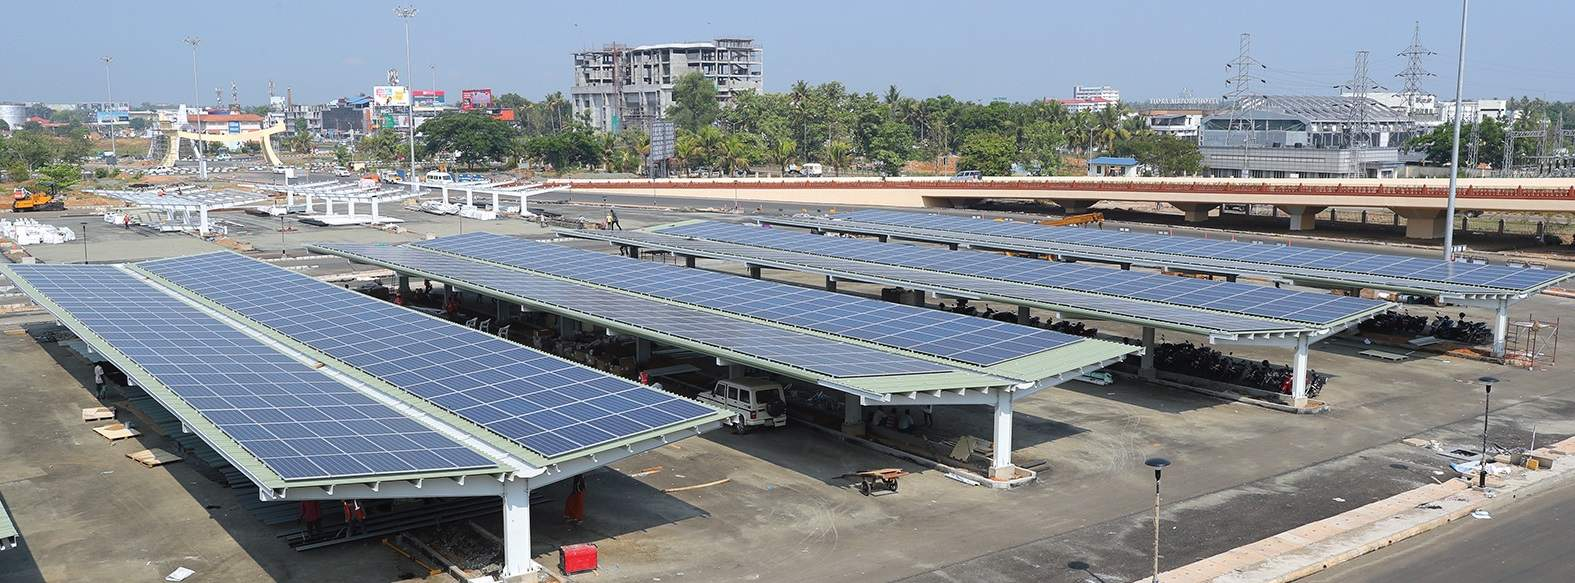 Solar Parking Solutions Svs Parking Company Parking And